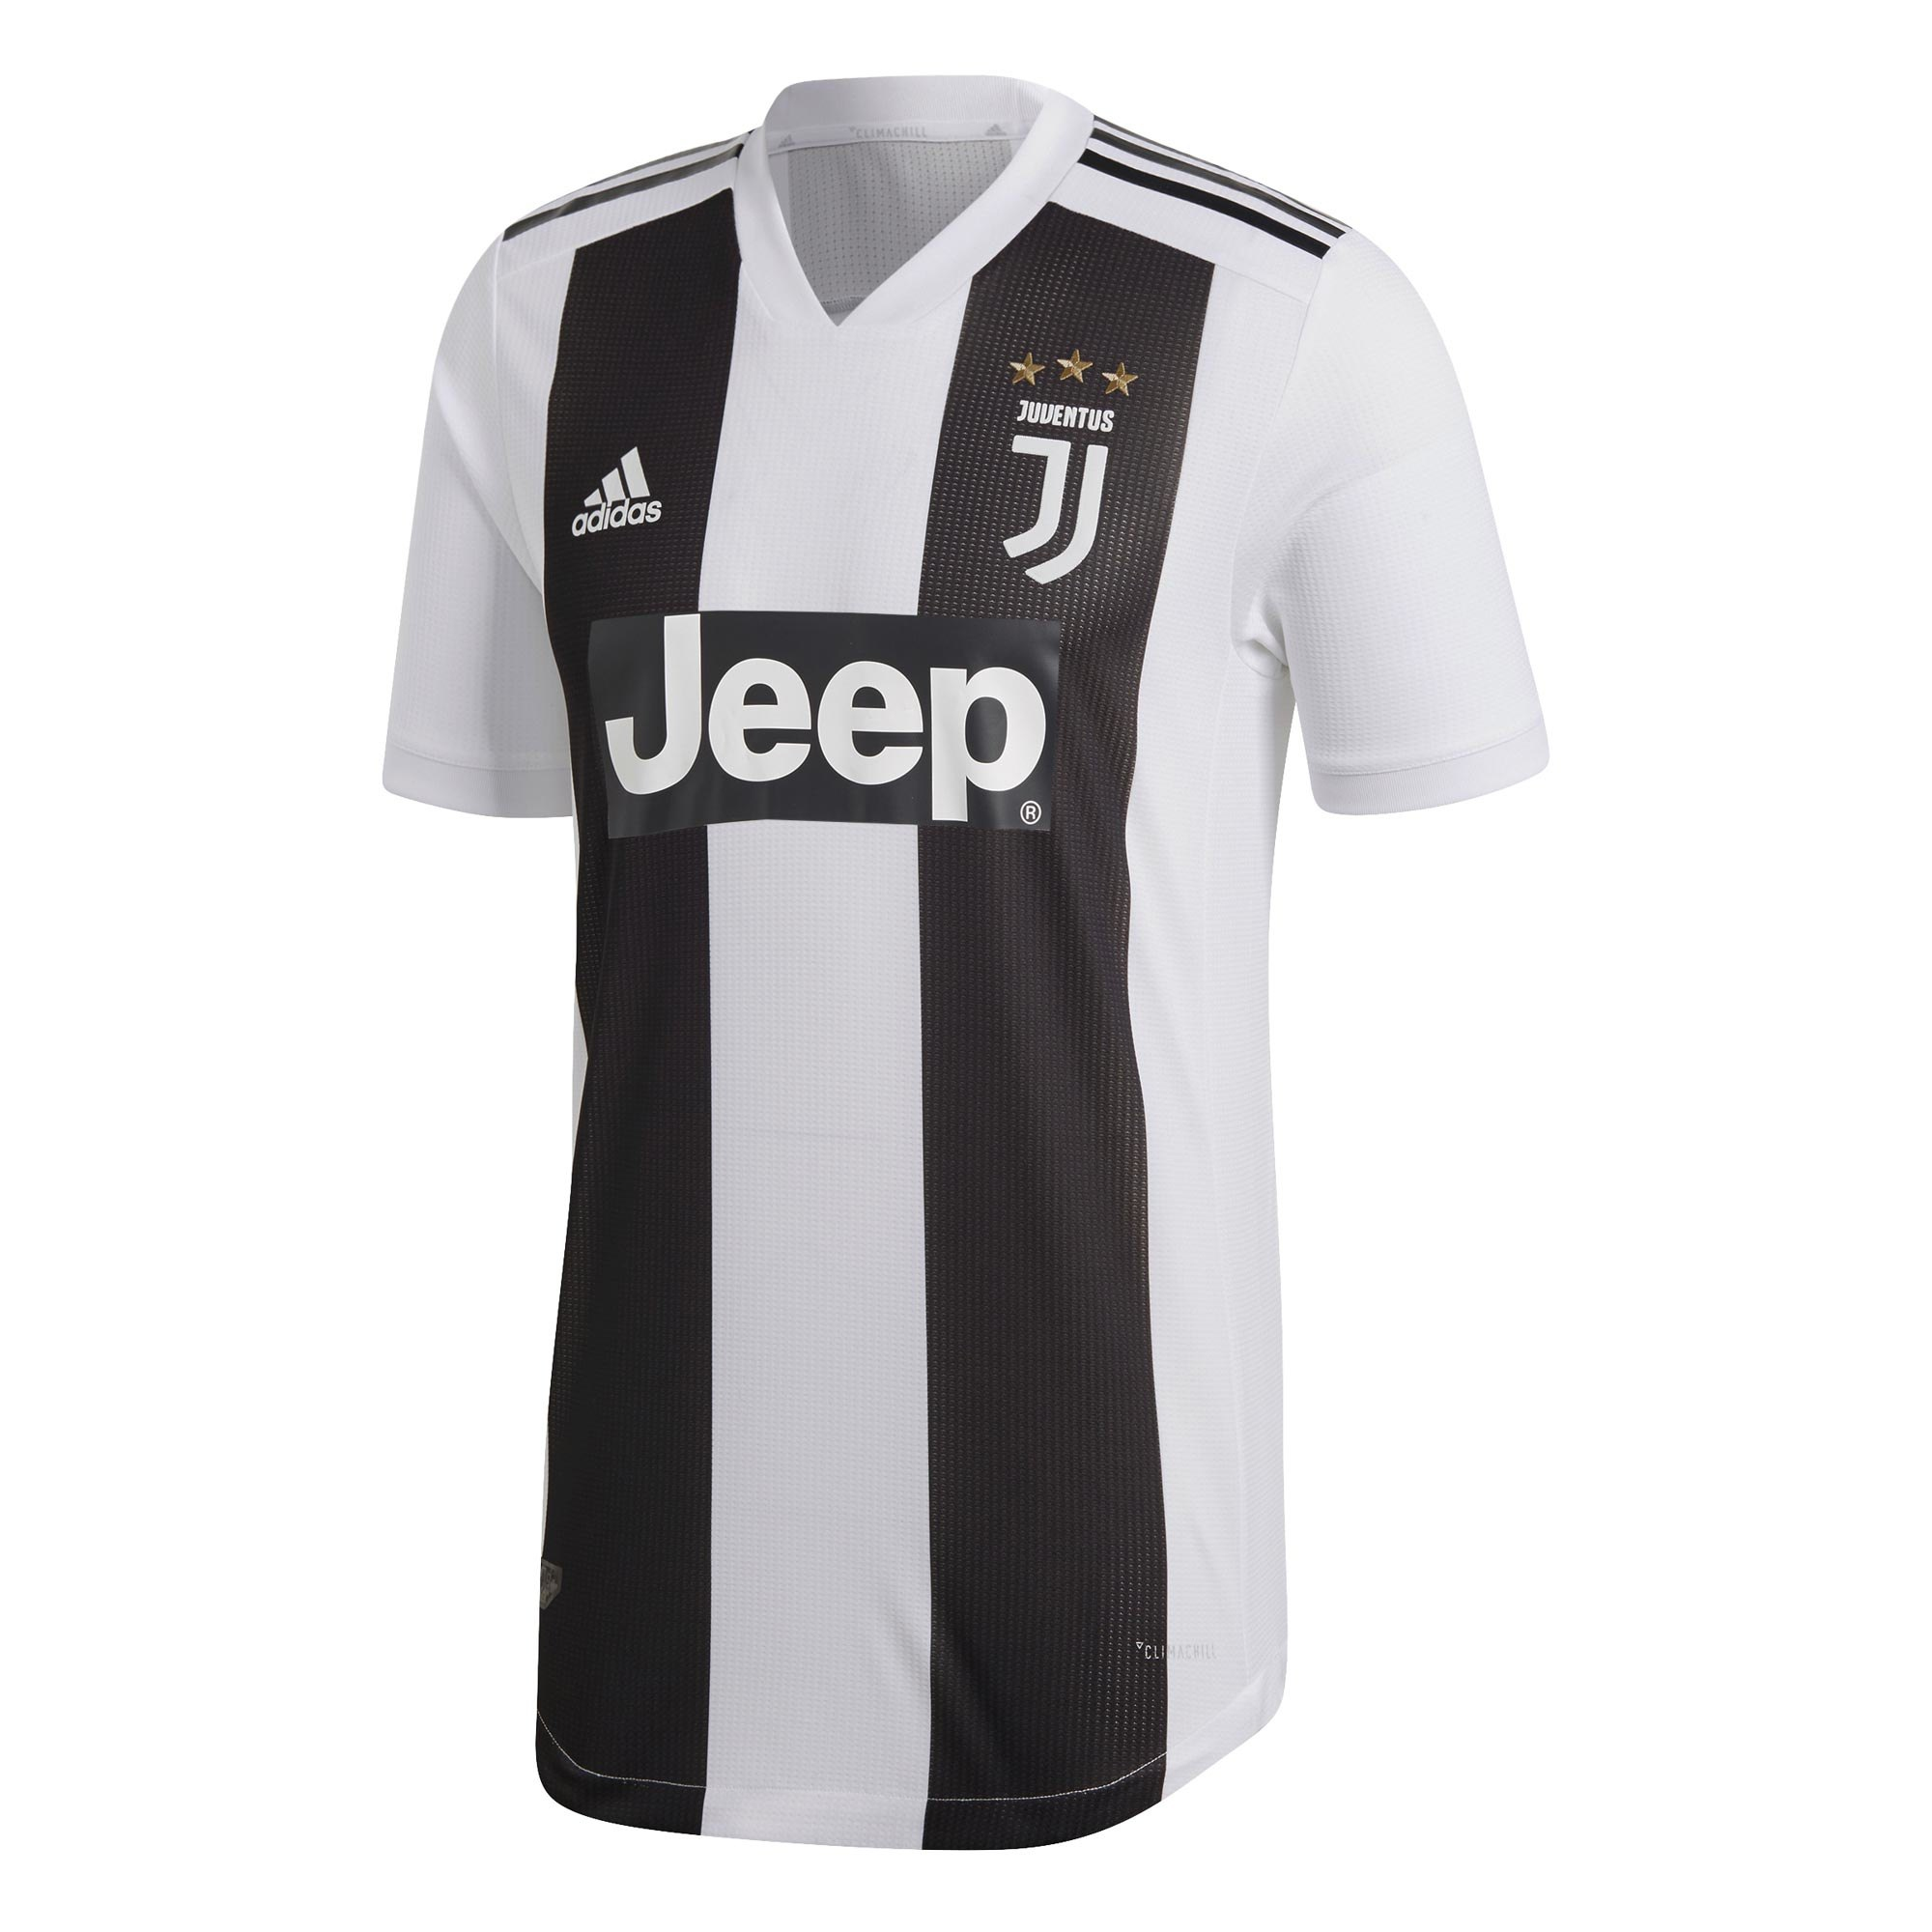 cheaper a0af6 cc937 Jersey - Juventus Home Jersey 2018/2019 Football Jersey Online Malaysia |  Jers